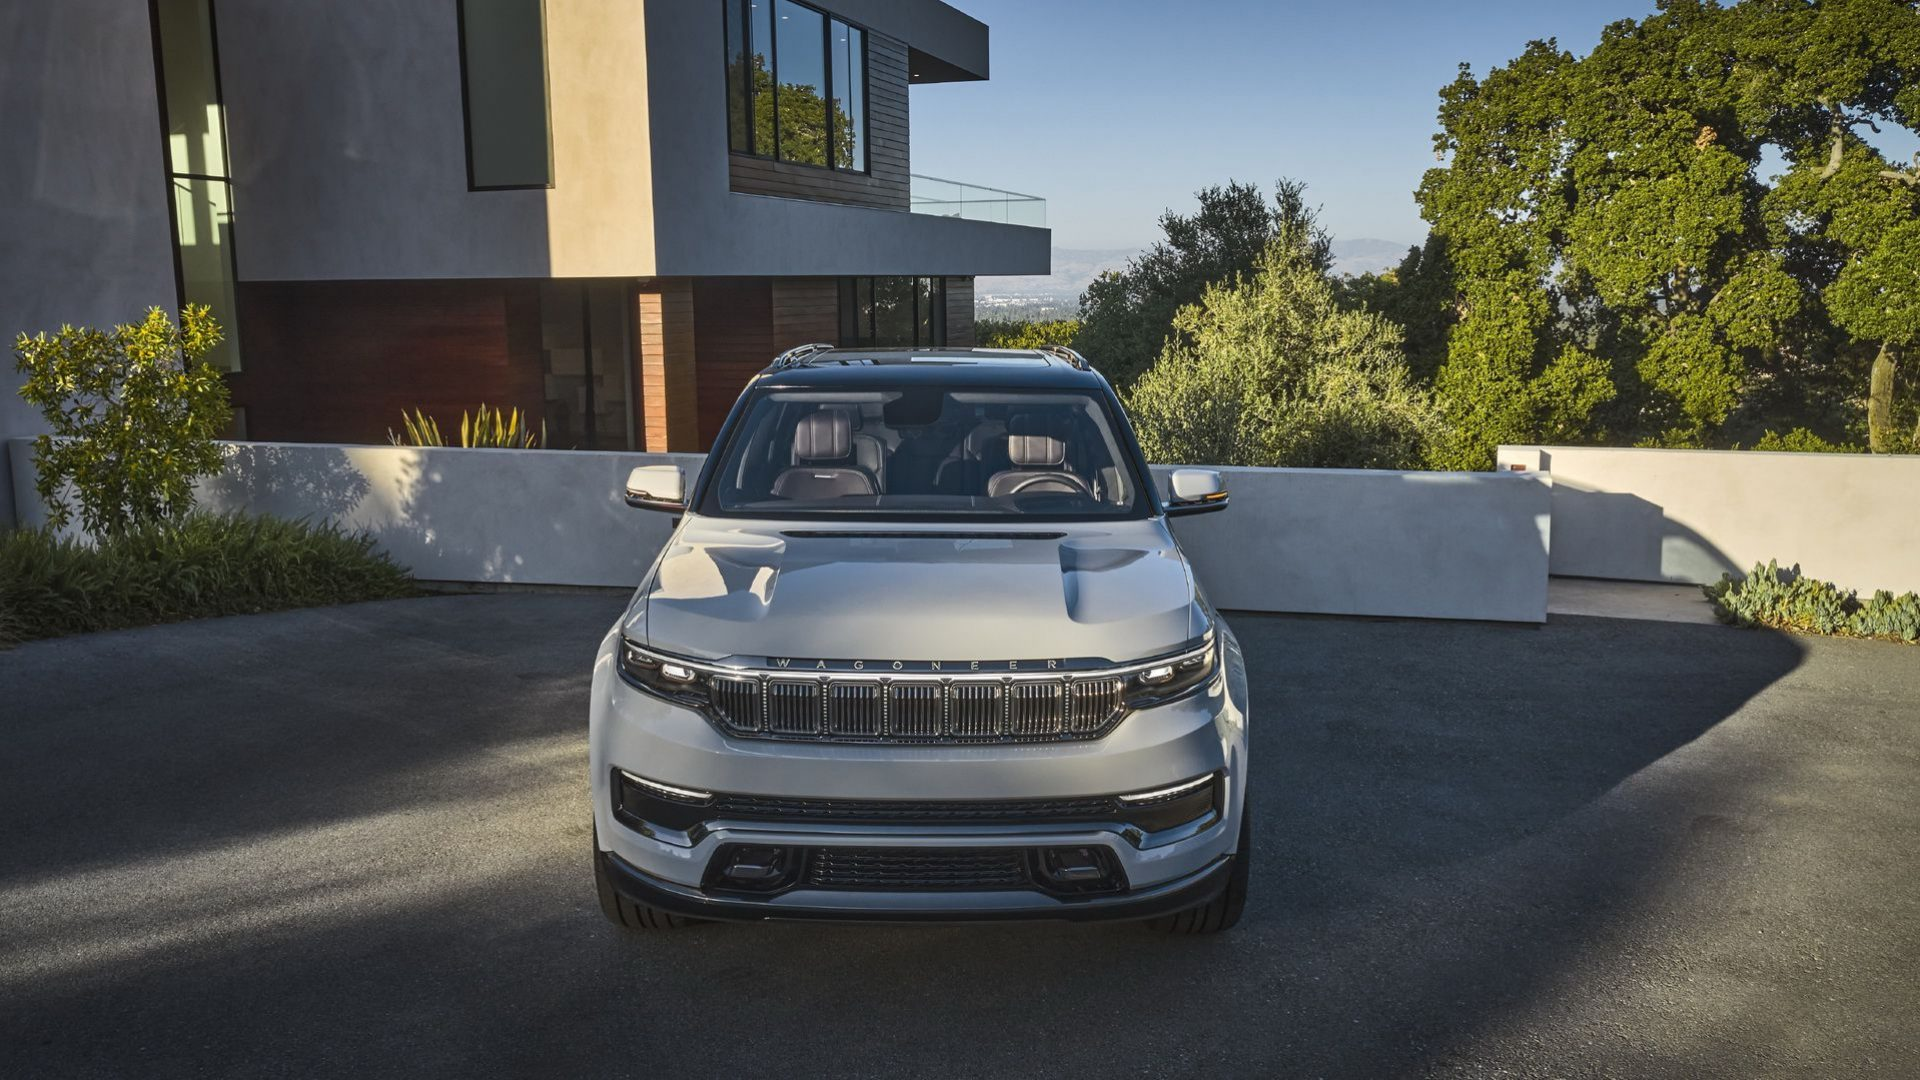 2020-Jeep-Grand-Wagoneer-Concept-11